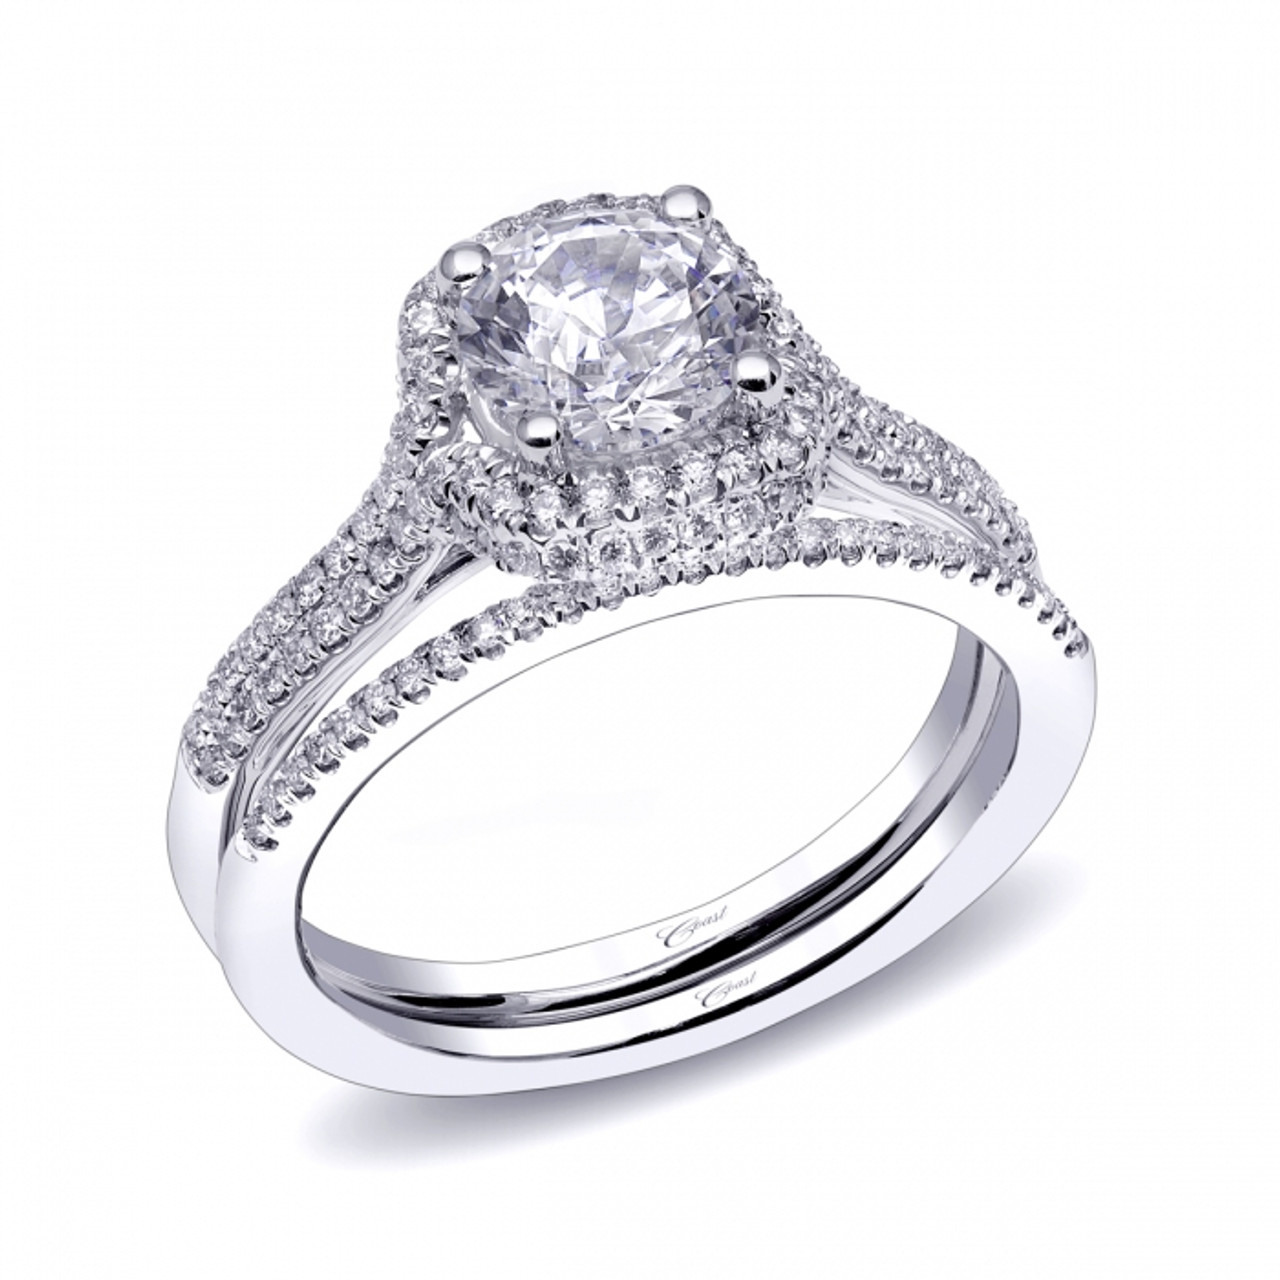 Cushion Double Halo Engagement Ring Setting 0 35ctw With Matching